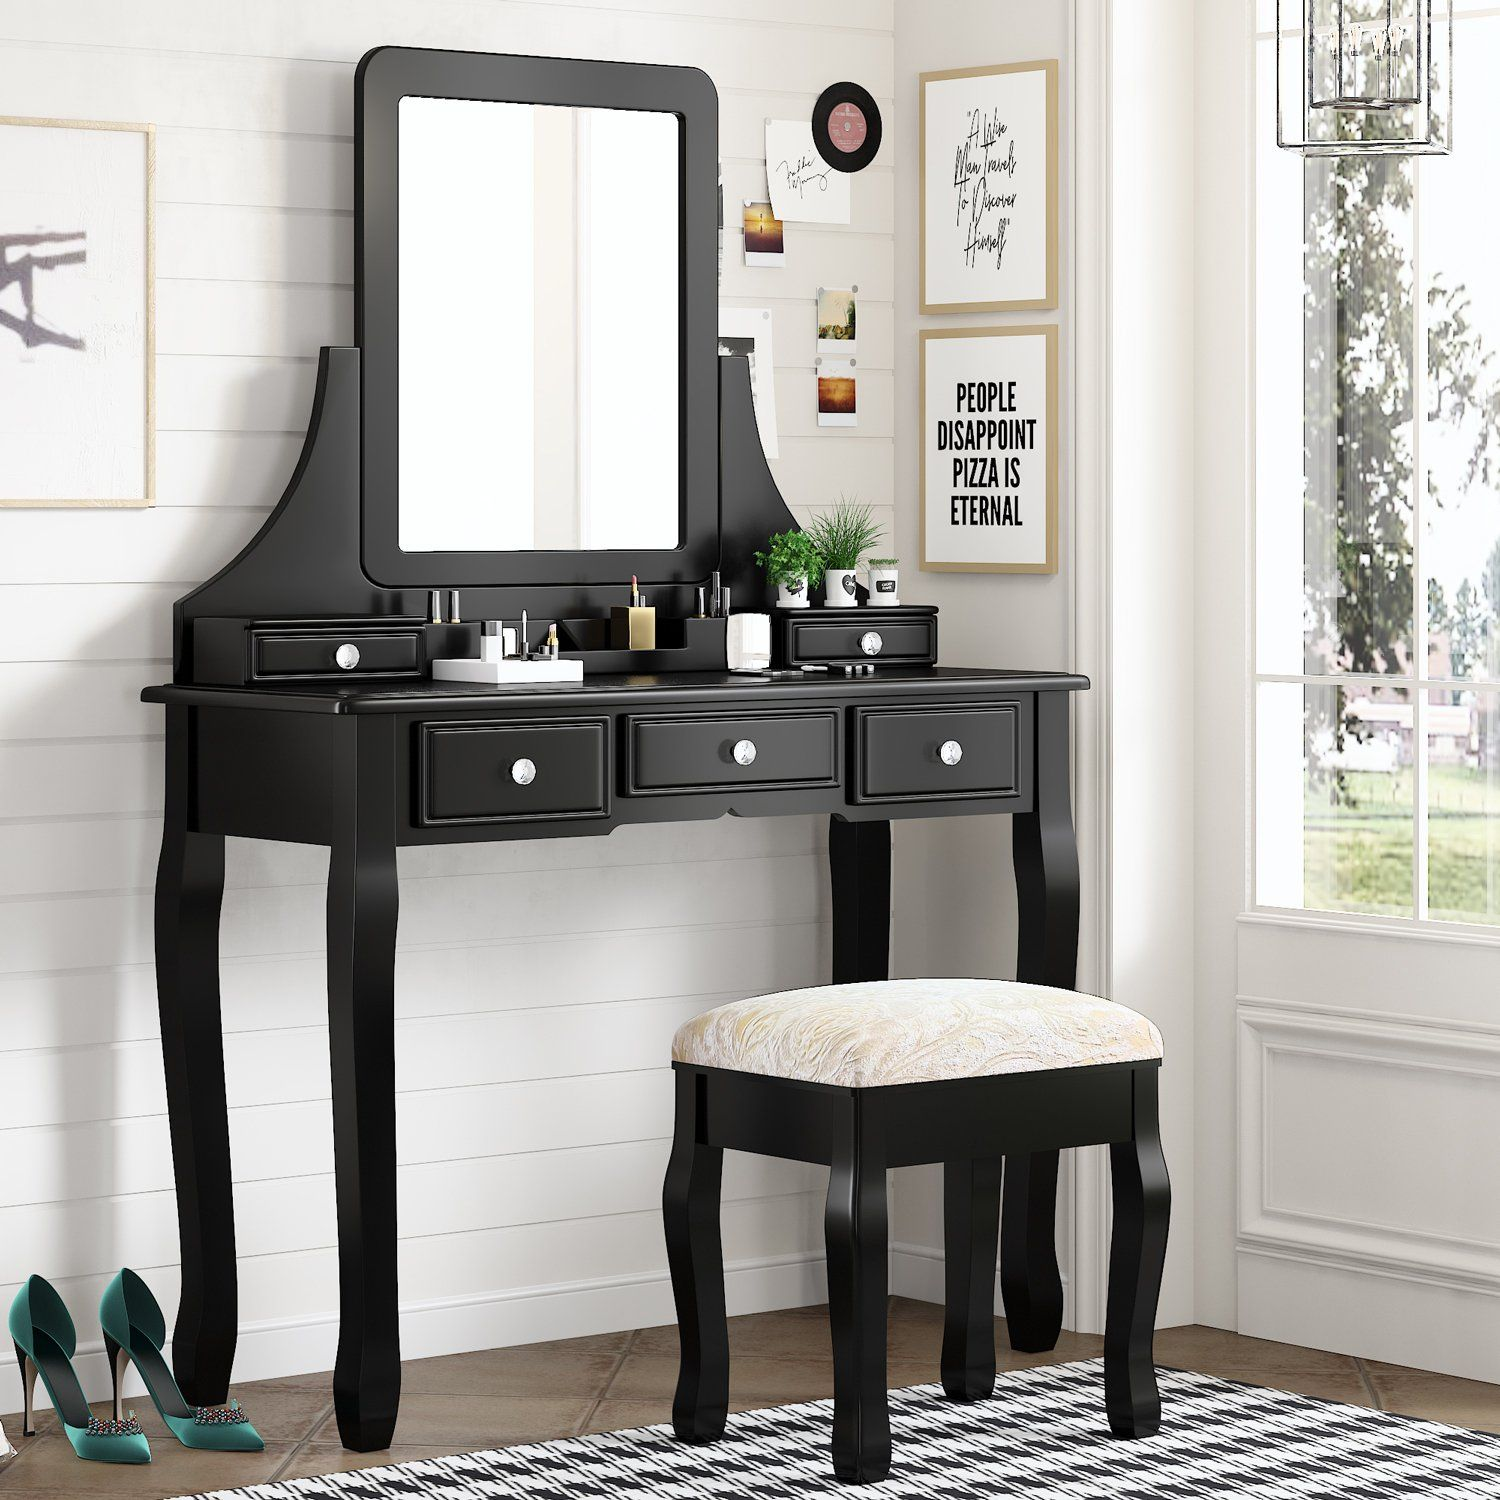 Makeup Vanity Table and Cushioned Stool Set, Bedroom Vanity Desk with Mirror for Women Girls - Black